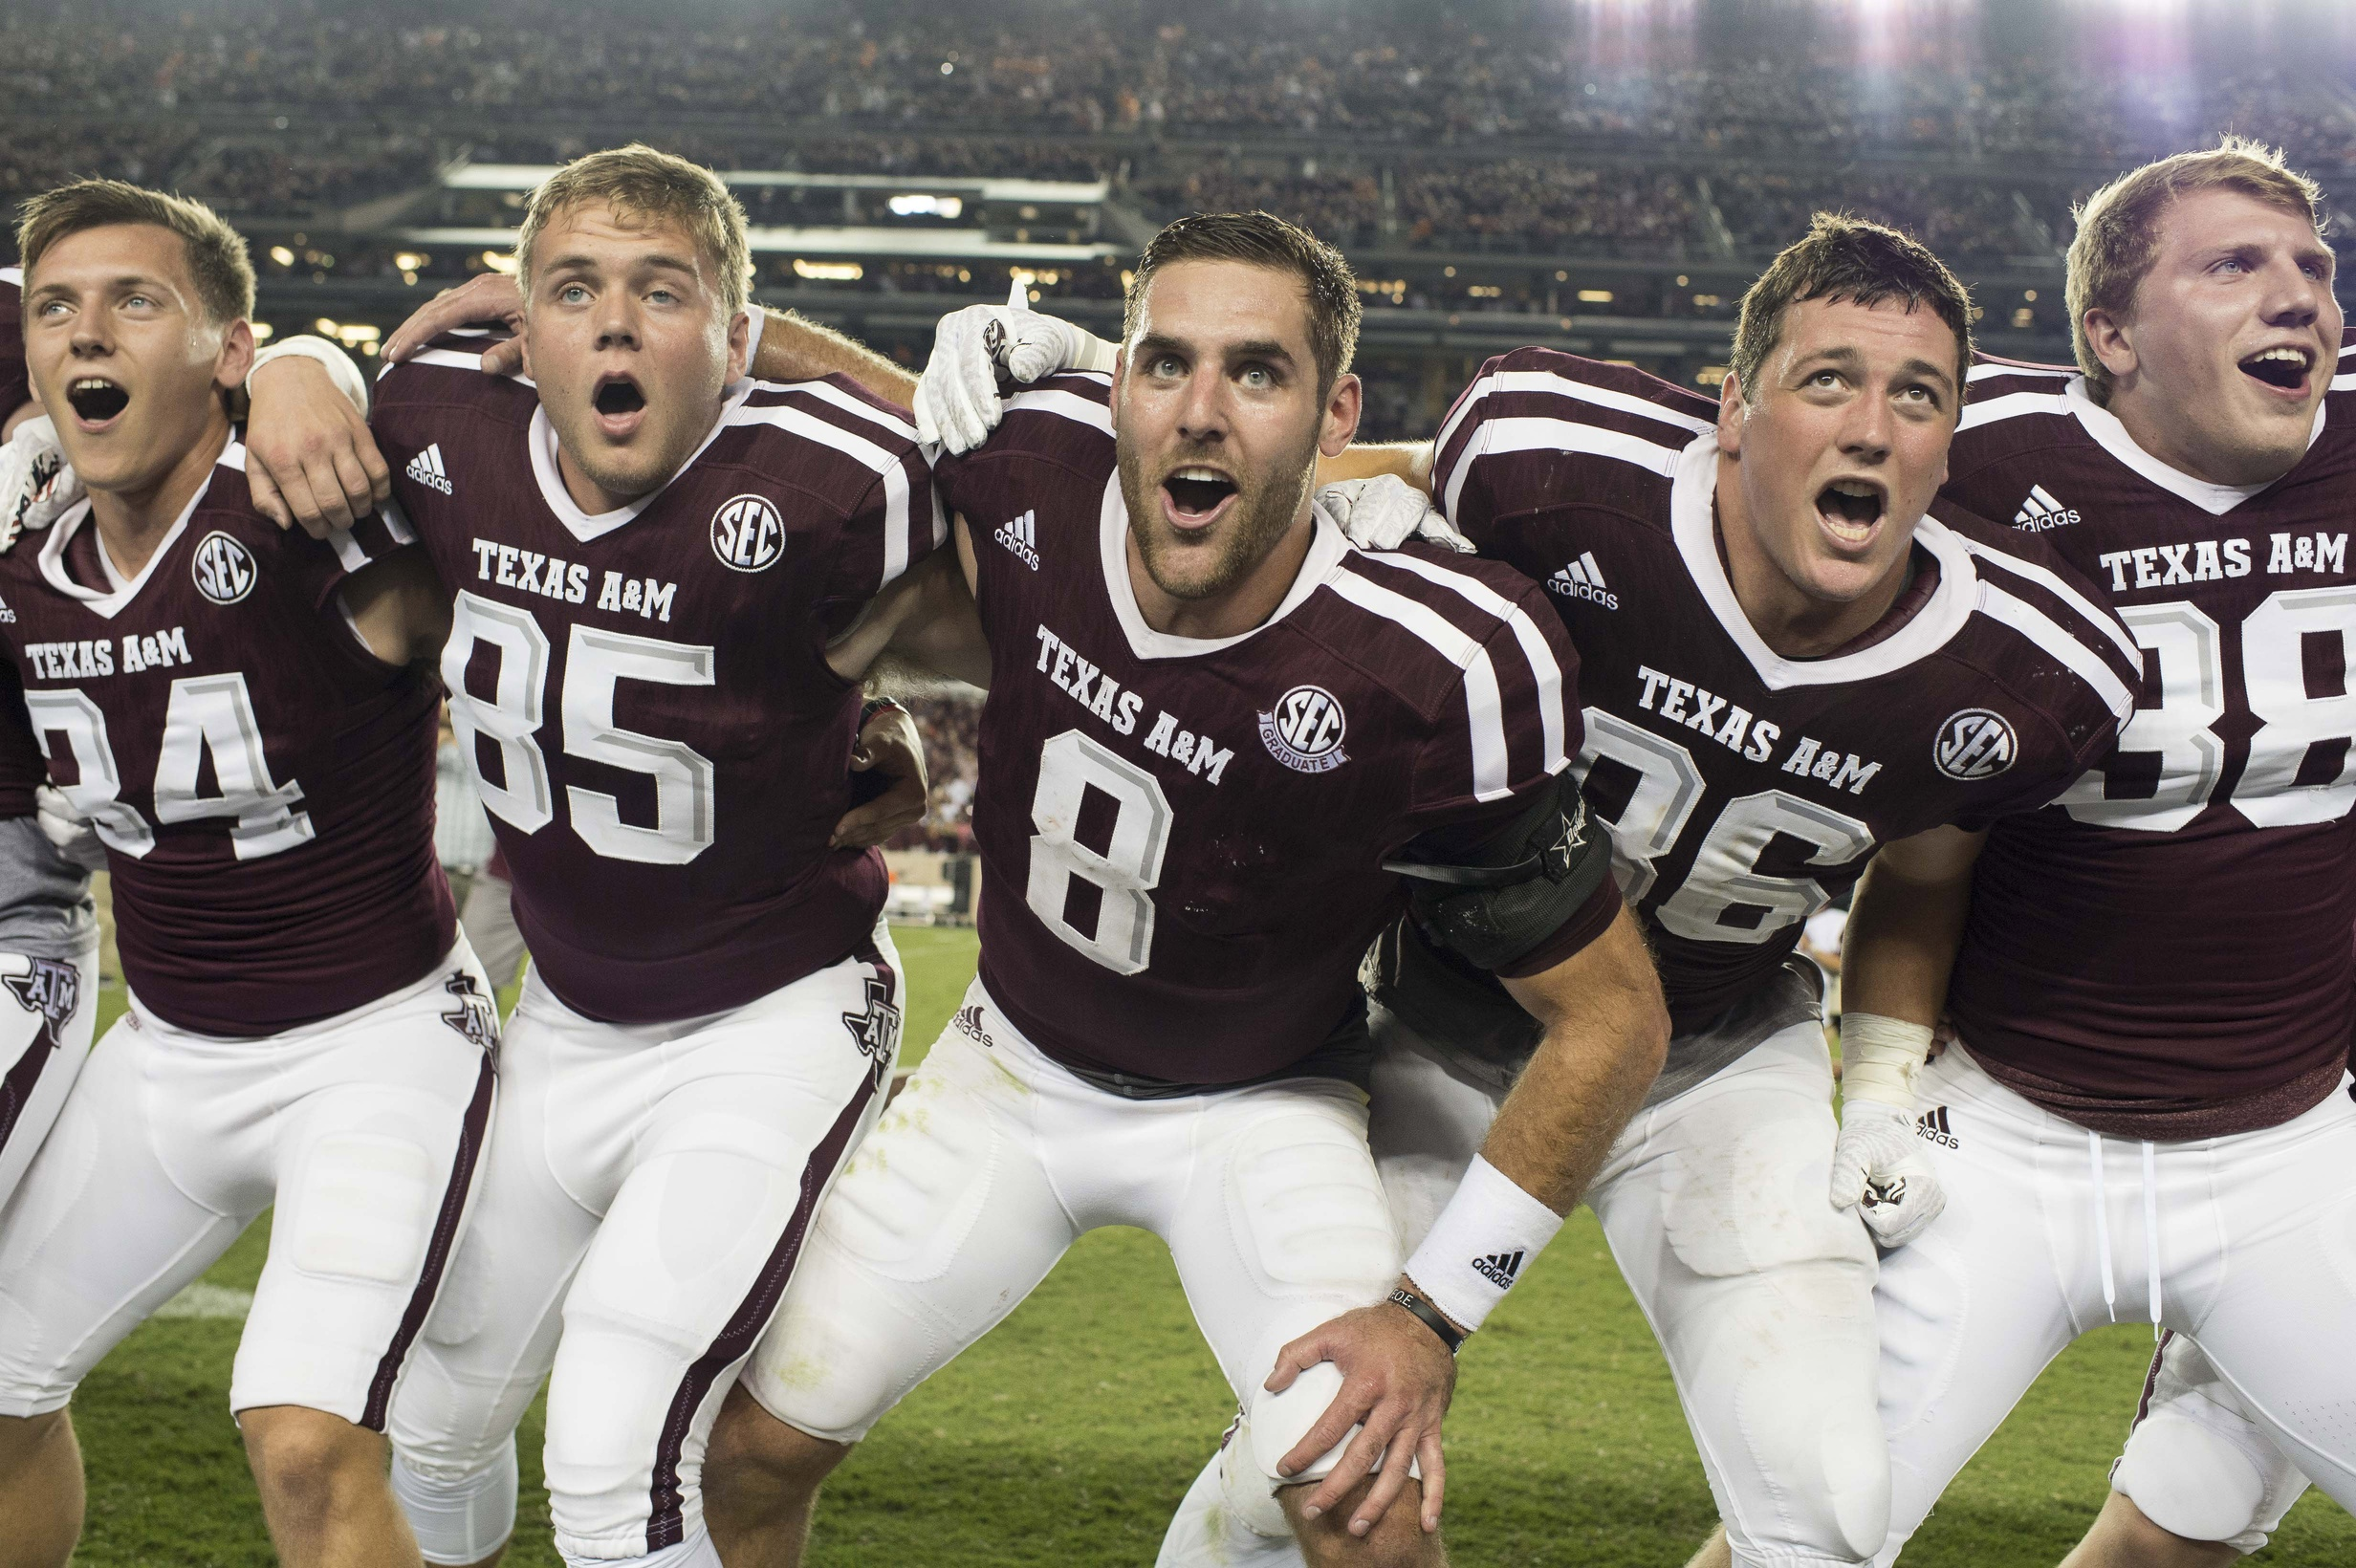 Oct 8, 2016; College Station, TX, USA; Texas A&M Aggies quarterback Trevor Knight (8) celebrates with his teammates after the win over the Tennessee Volunteers at Kyle Field. The Aggies defeated the Volunteers 45-38 in overtime. Mandatory Credit: Jerome Miron-USA TODAY Sports